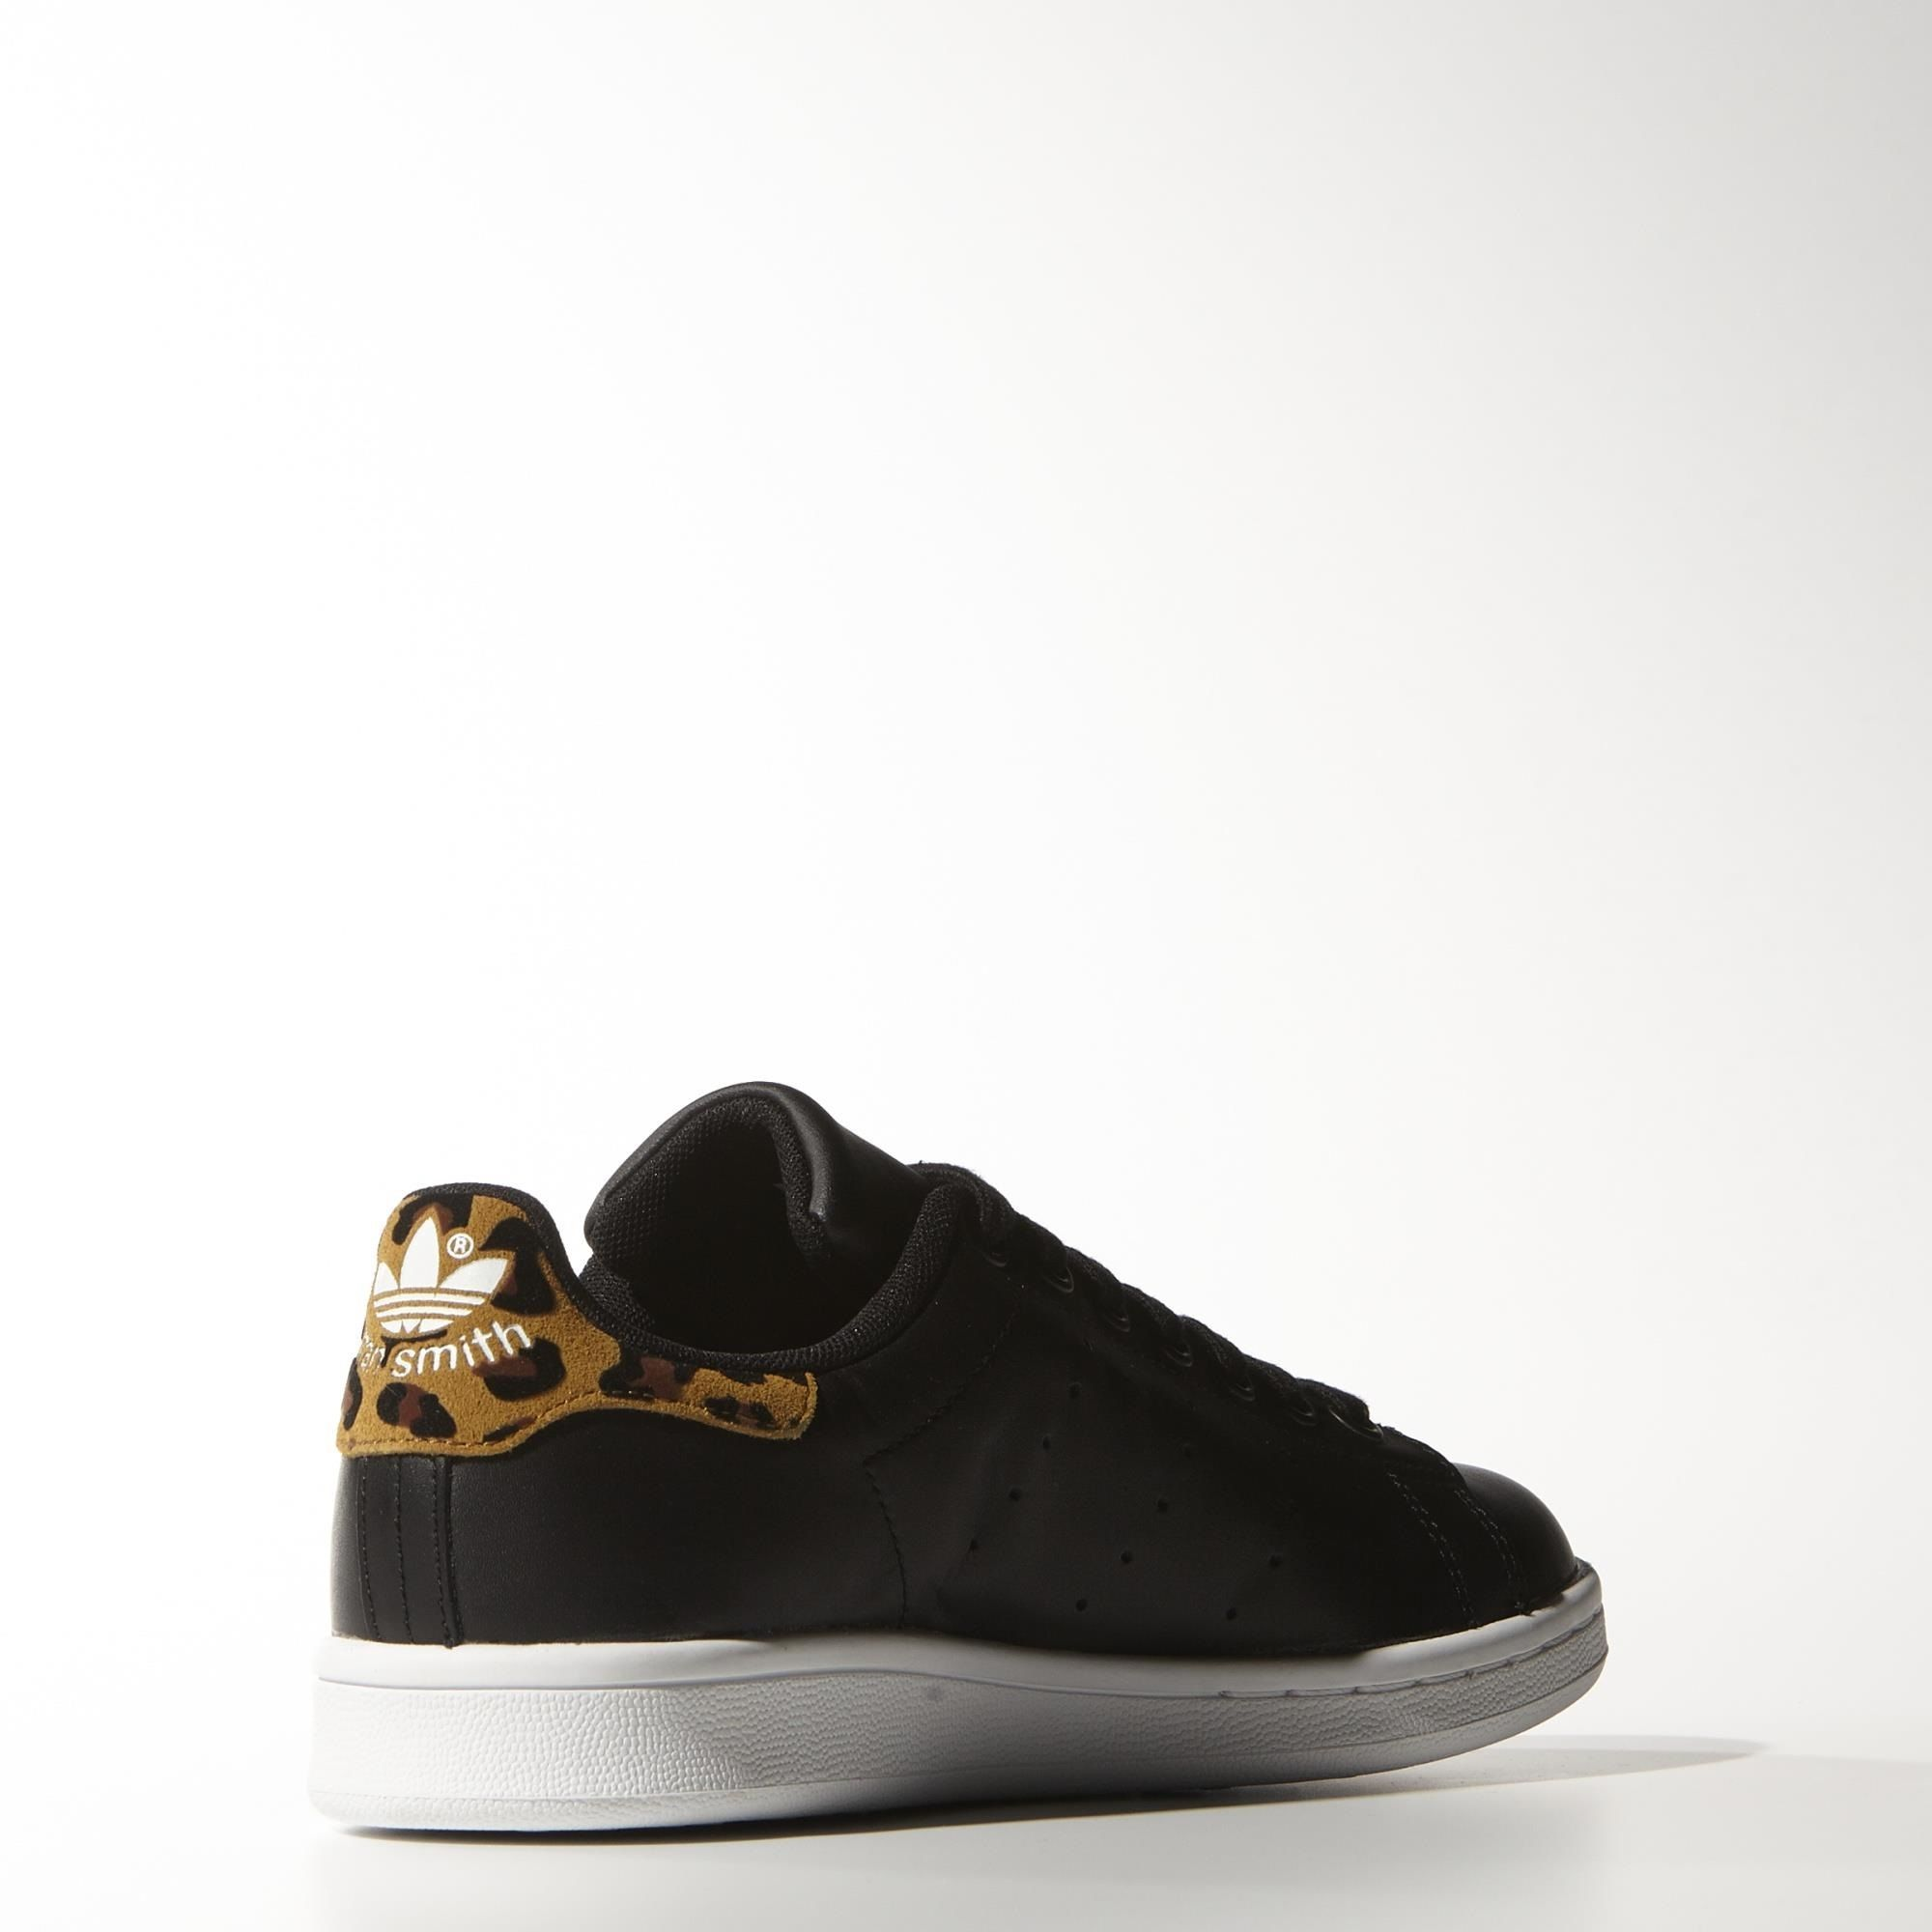 adidas - Chaussure Stan Smith - Kleren